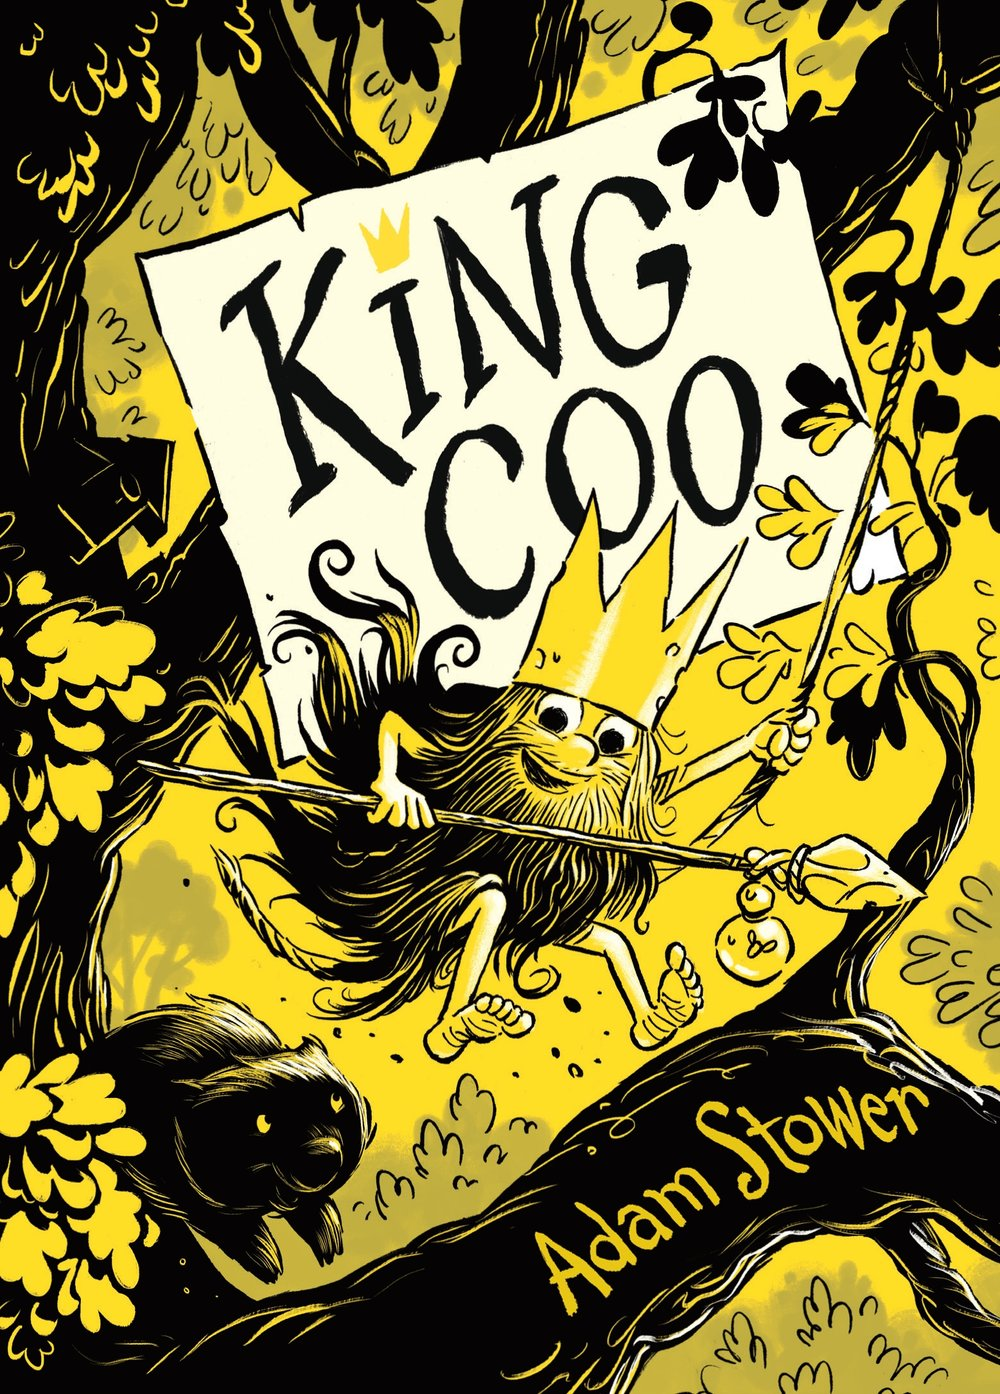 King Coo 11.45am